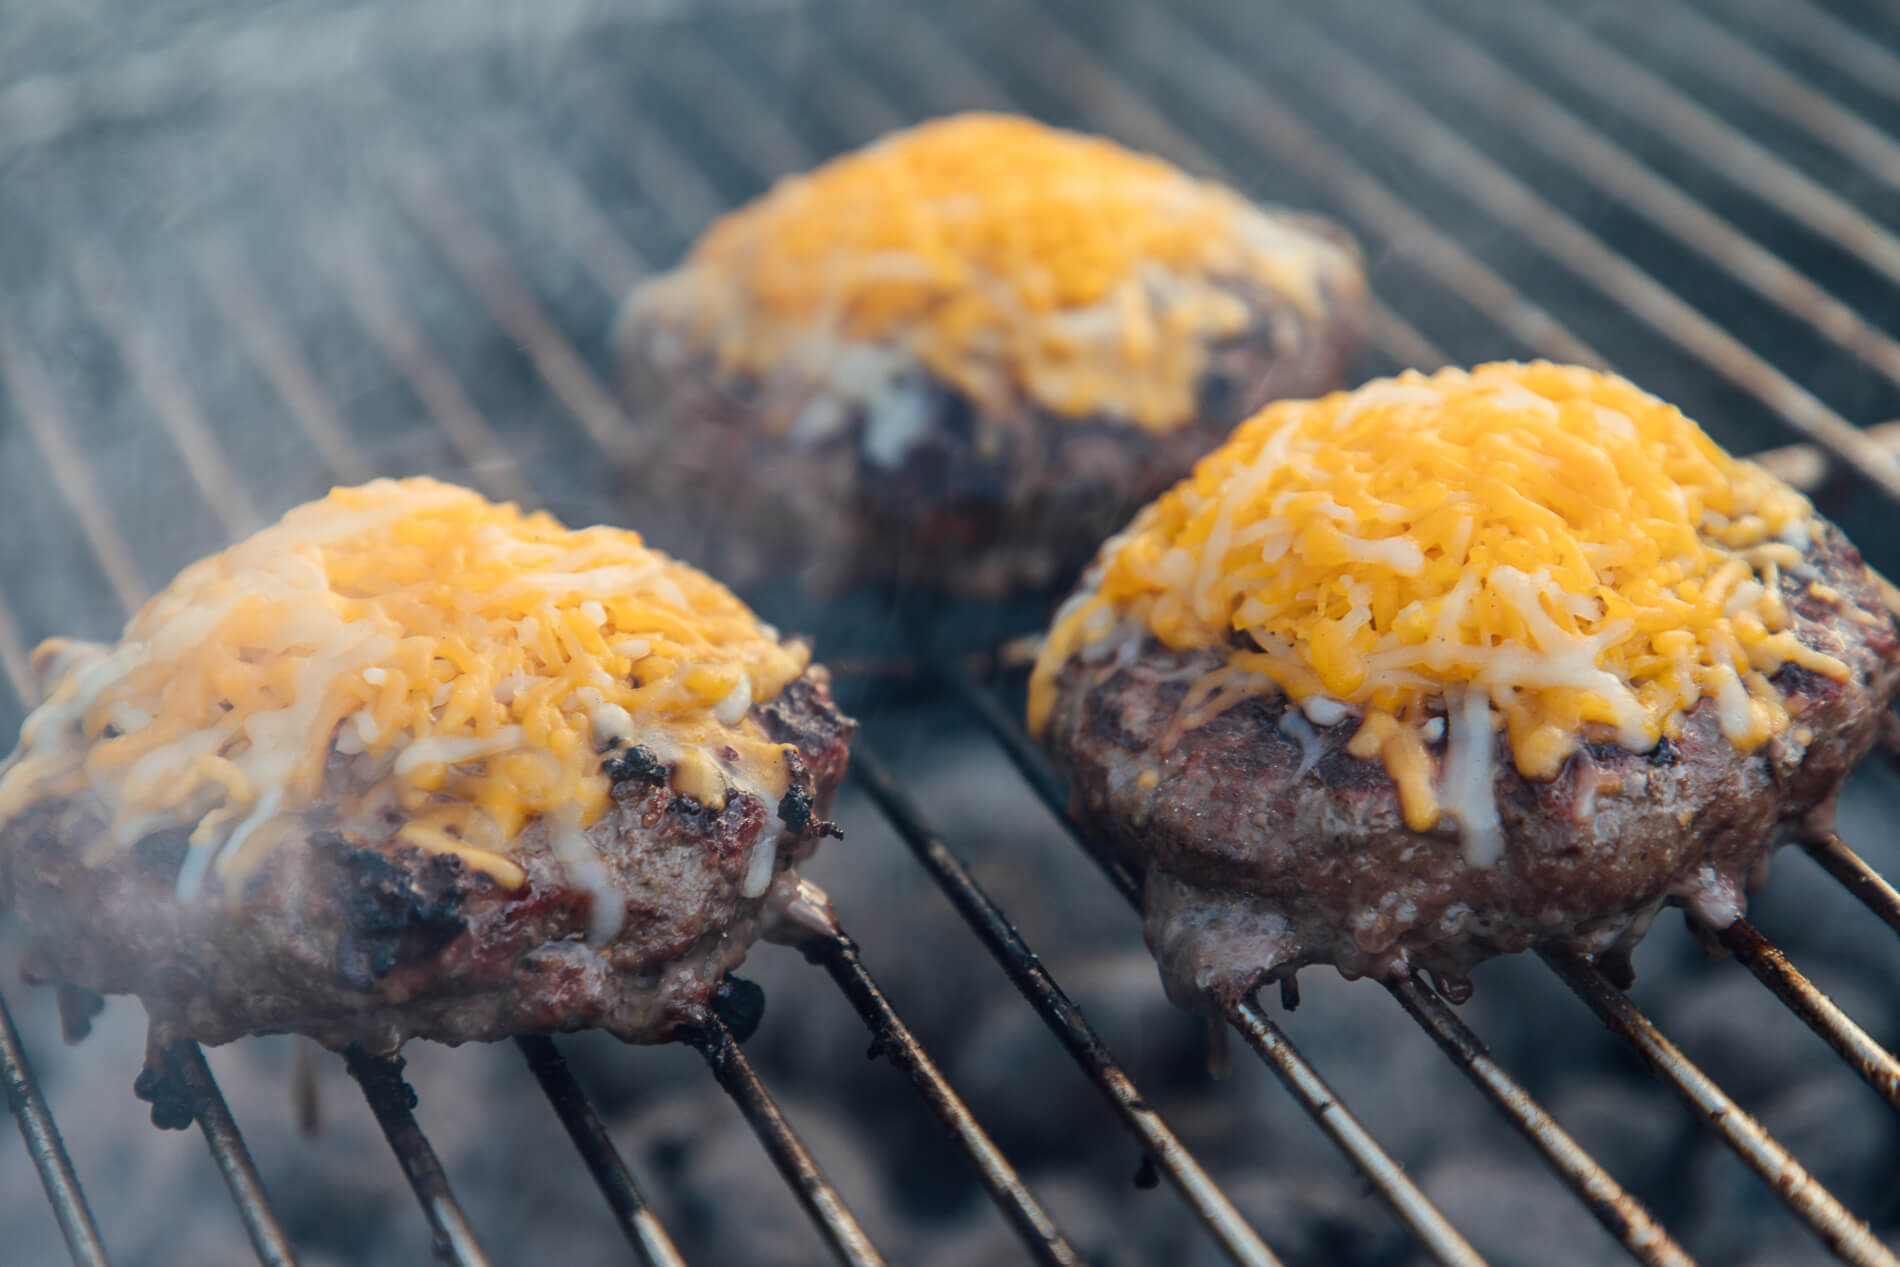 Melting Cheese on Burgers on Grill